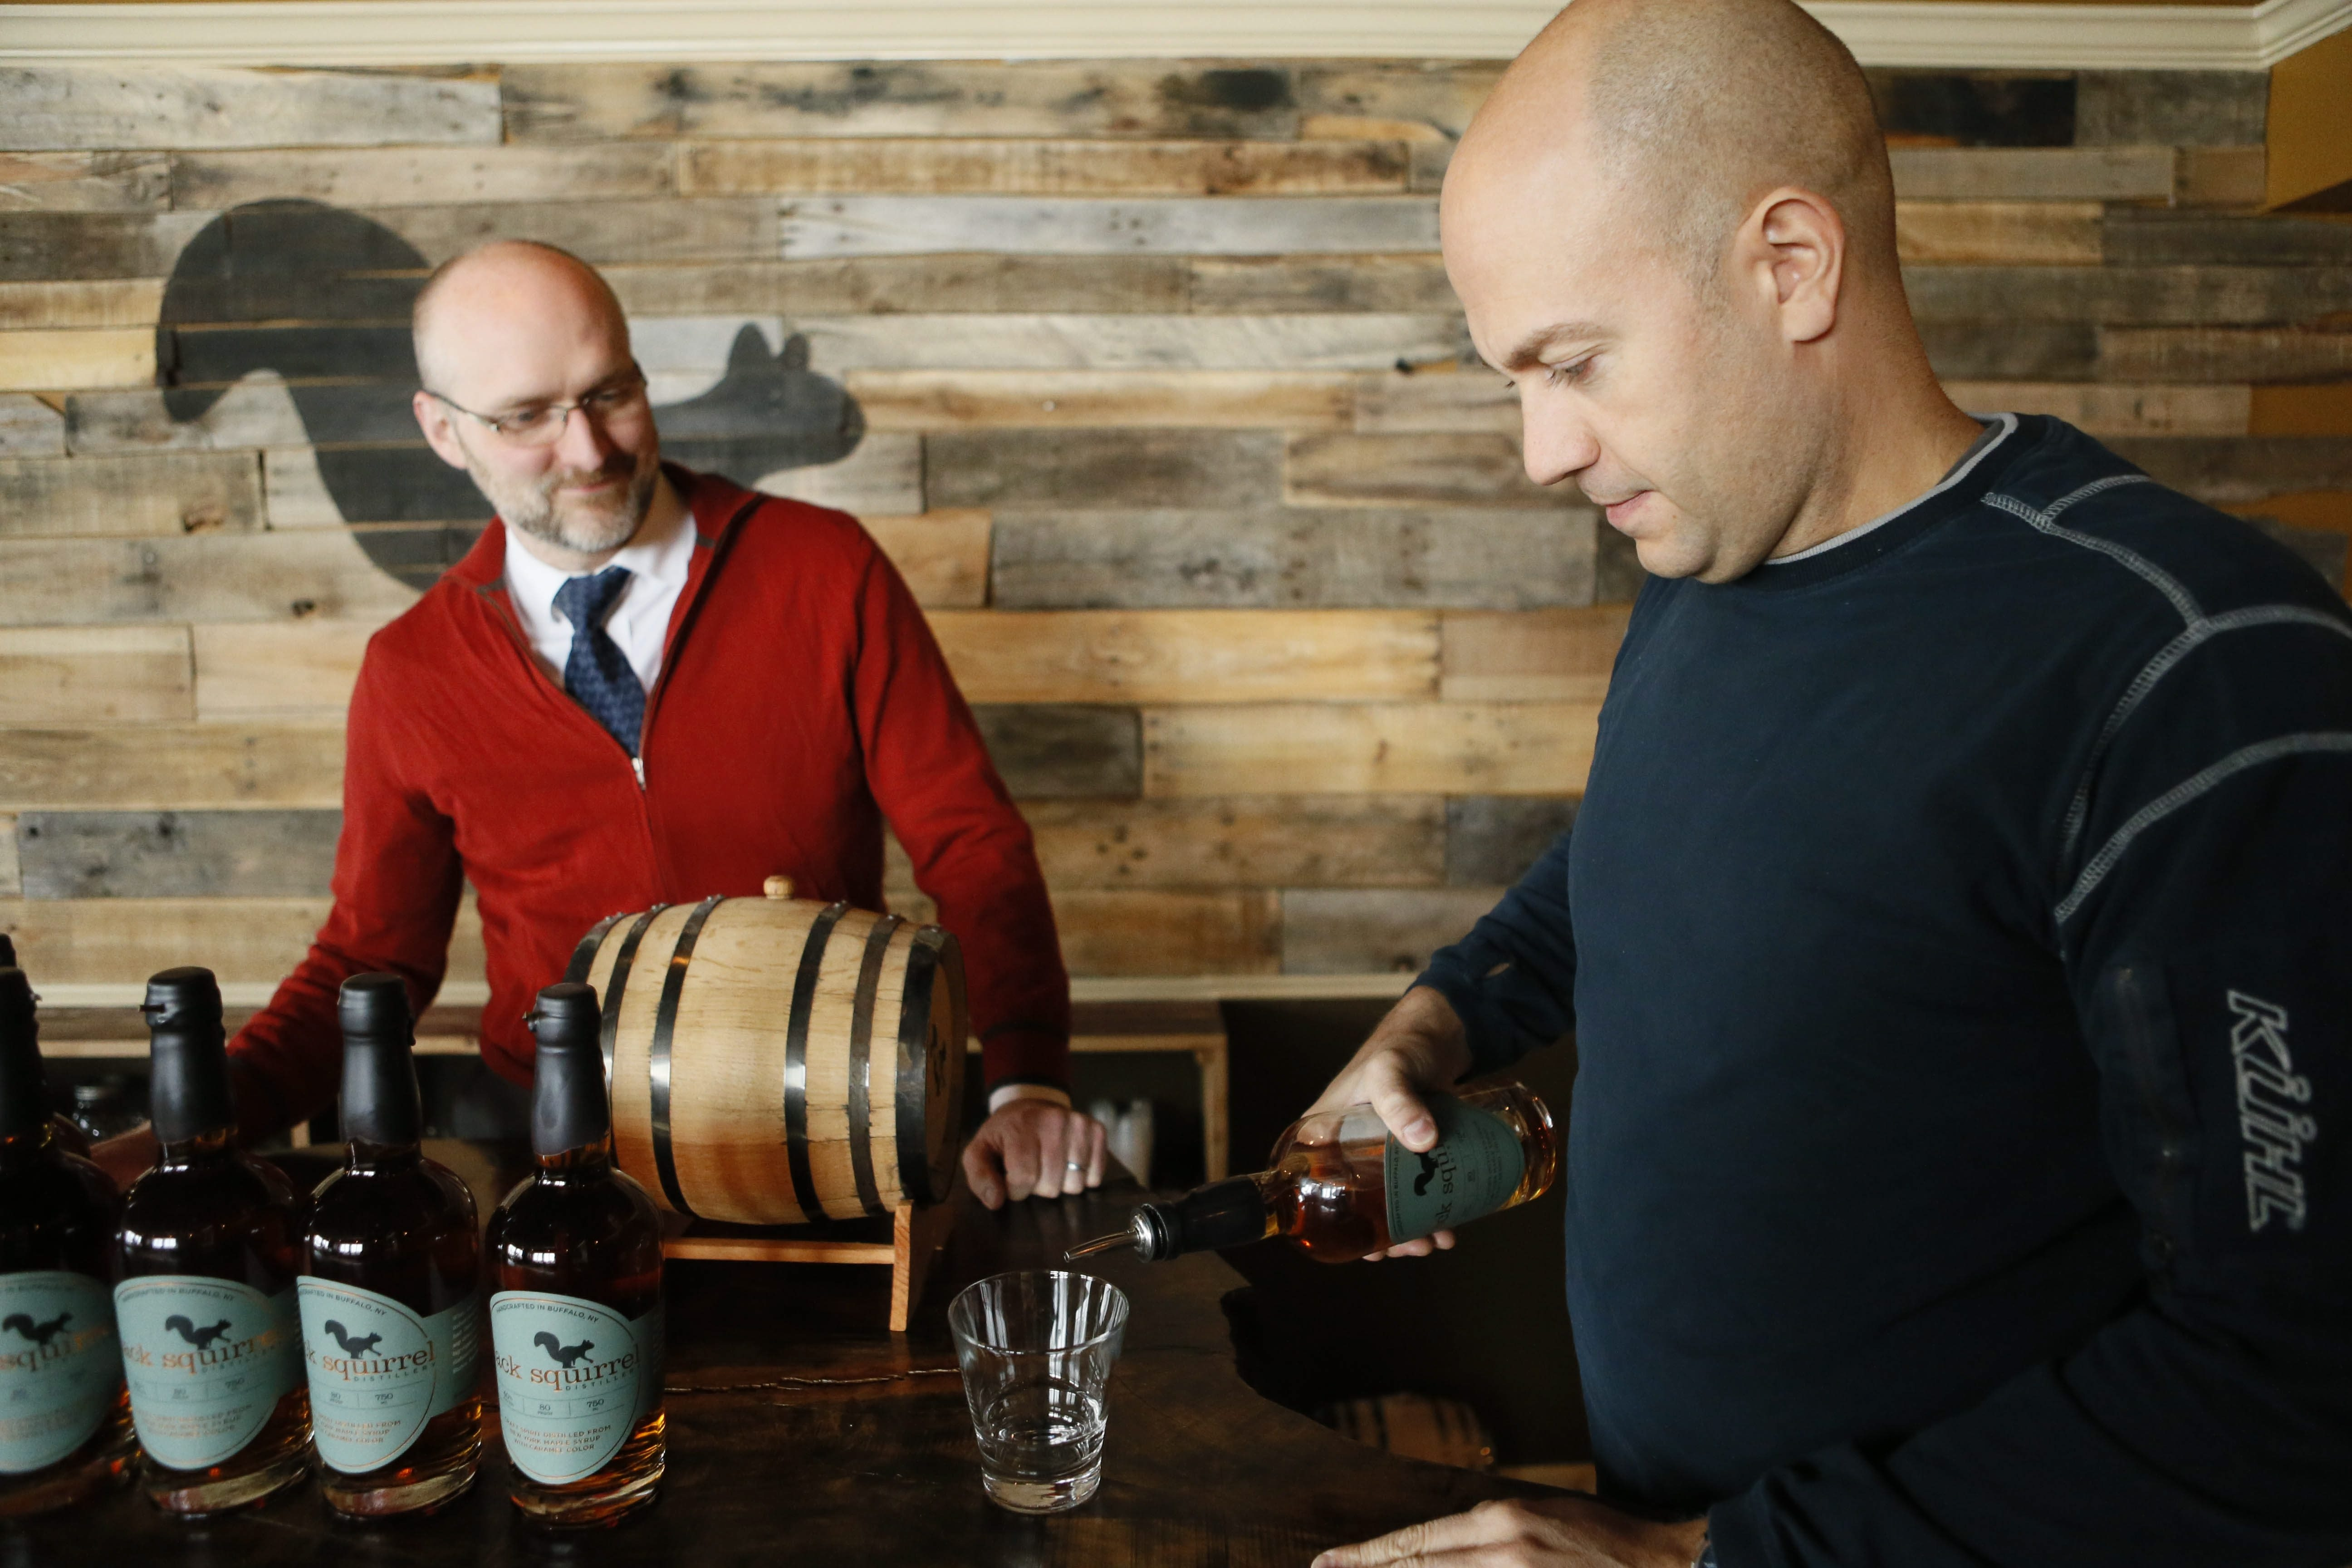 Brian Fending, left, and Jason Schwinger founded Black Squirrel Distillery on Elmwood Avenue, and are producing a craft spirit distilled from New York State maple syrup.